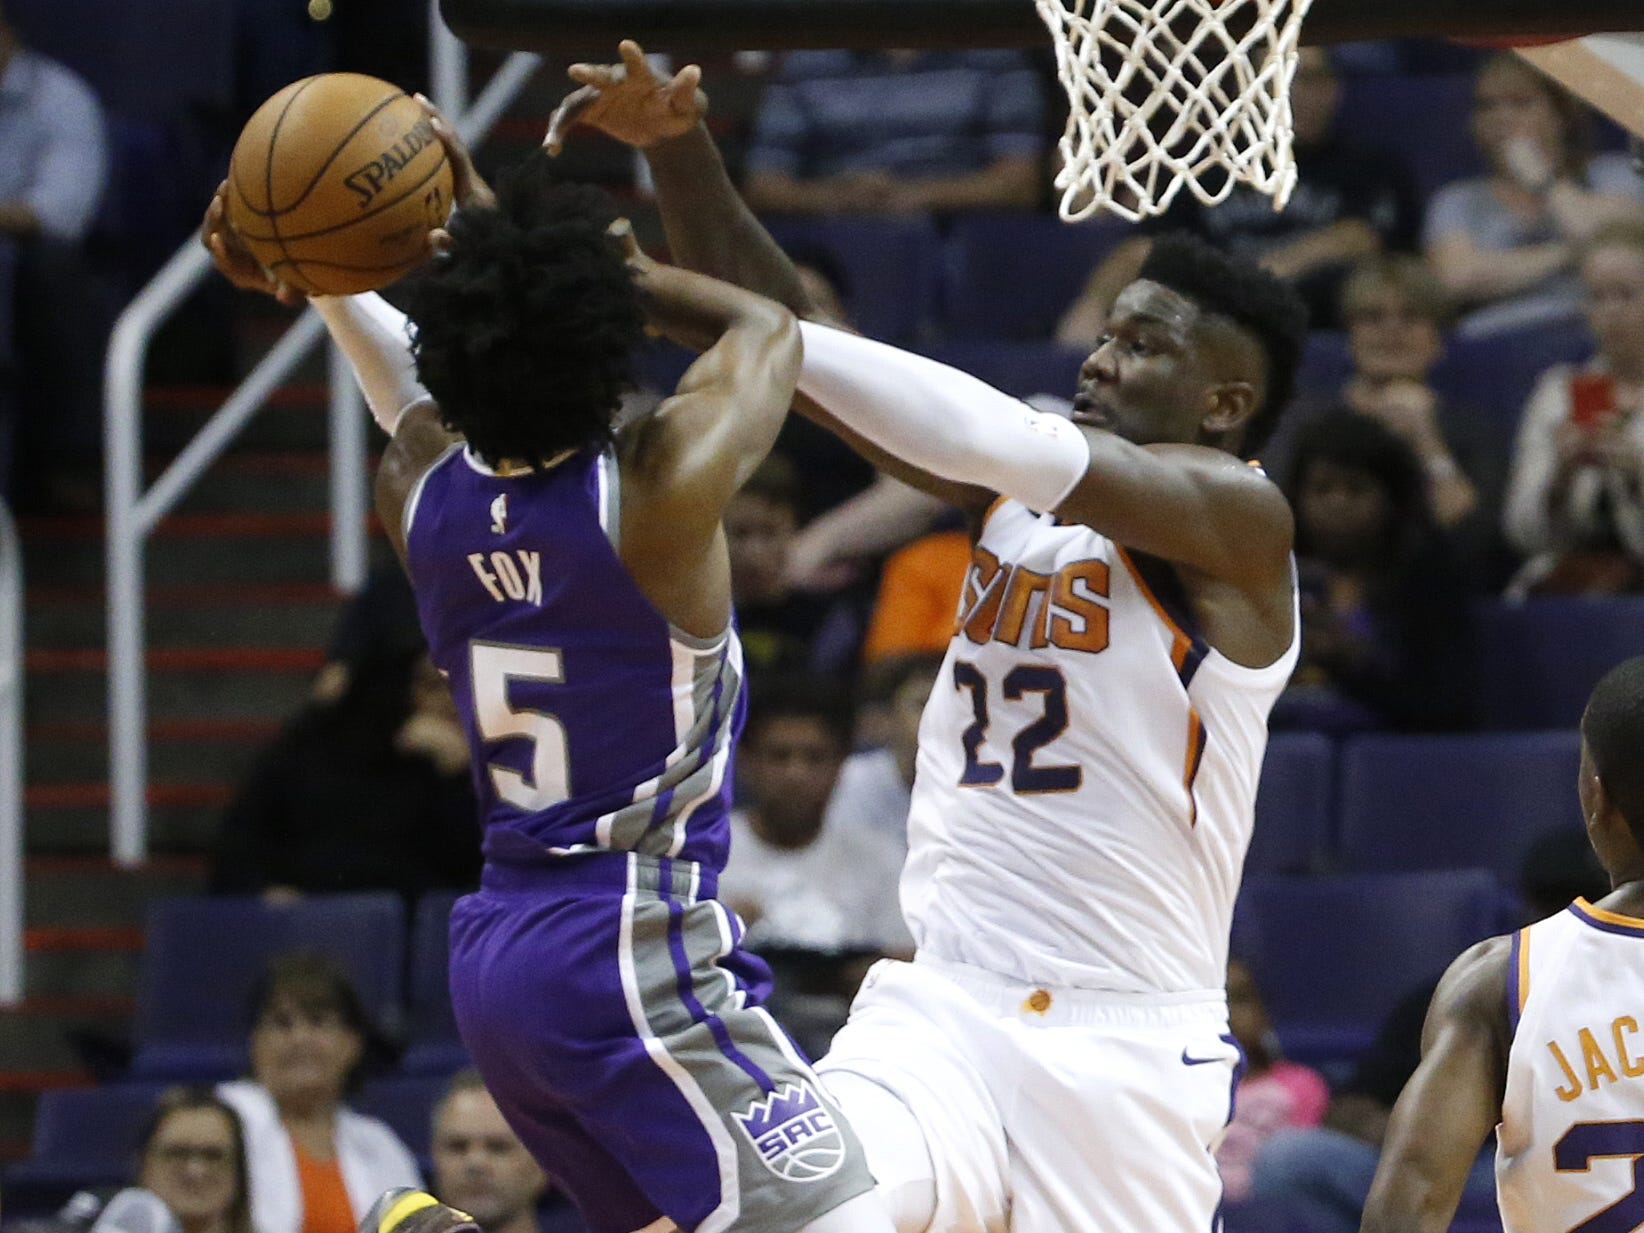 Suns' Deandre Ayton (22) blocks a shot on Kings' De'Aaron Fox (5) during the first half at Talking Stick Resort Arena in Phoenix, Ariz. on October 1, 2018.